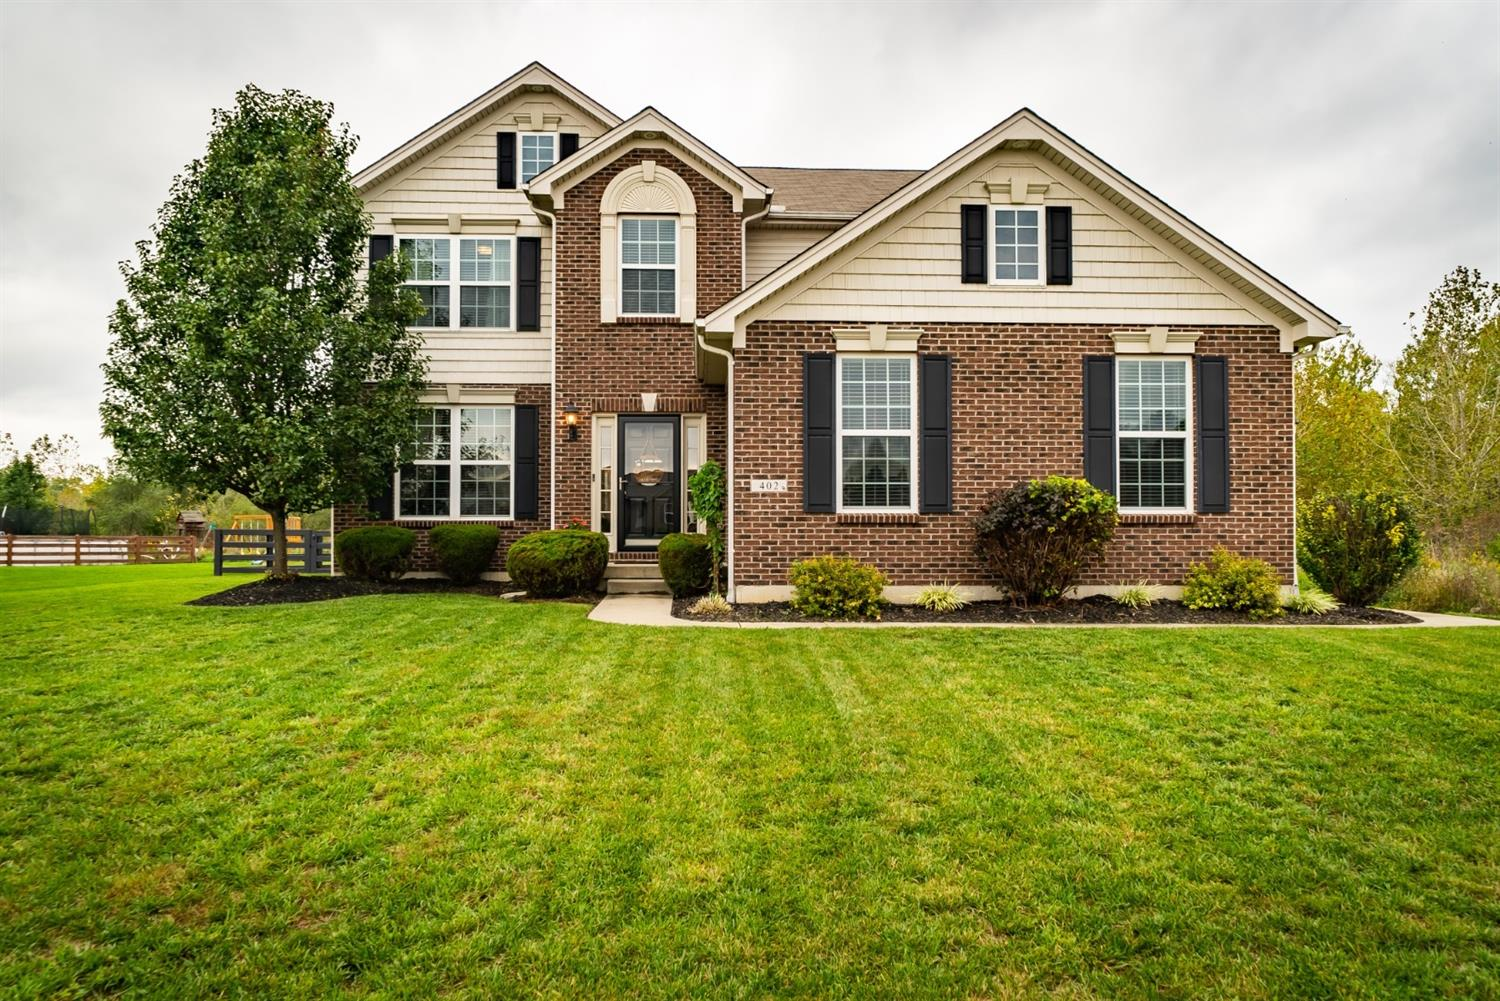 Property for sale at 402 Sudbury Drive, Trenton,  OH 45067